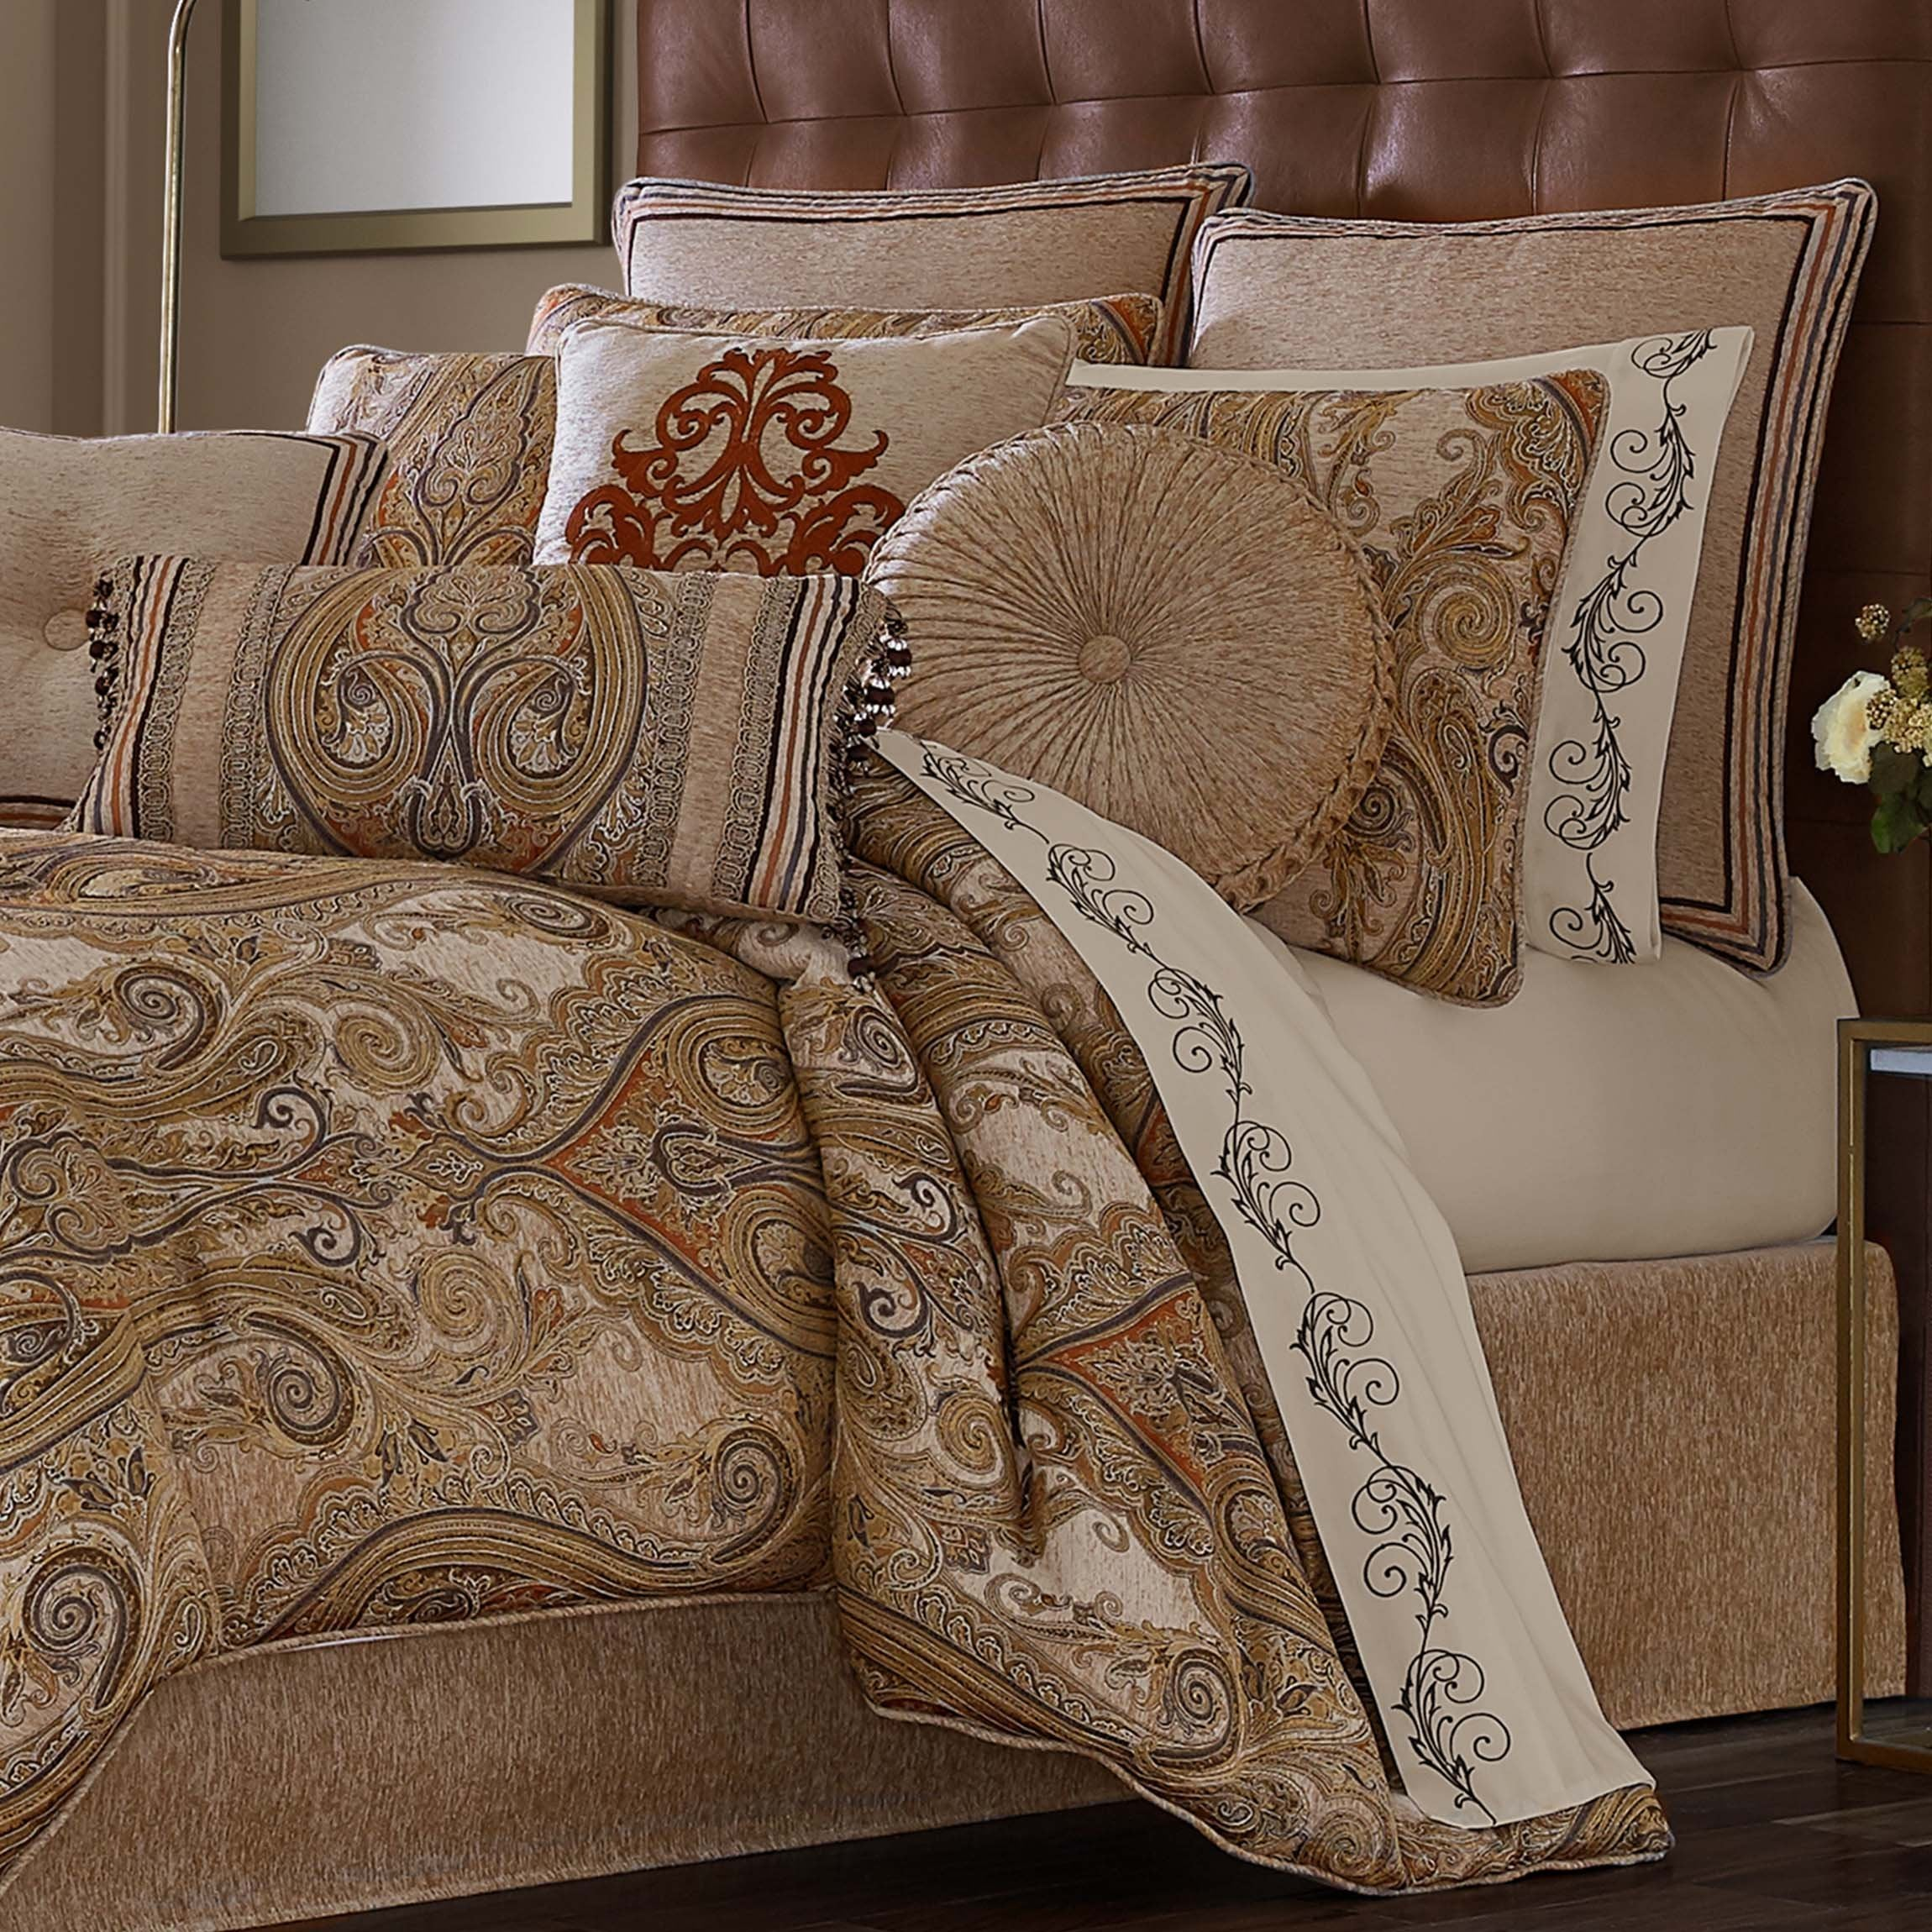 Luciana Beige 4-Piece Comforter Set Comforter Sets By J. Queen New York